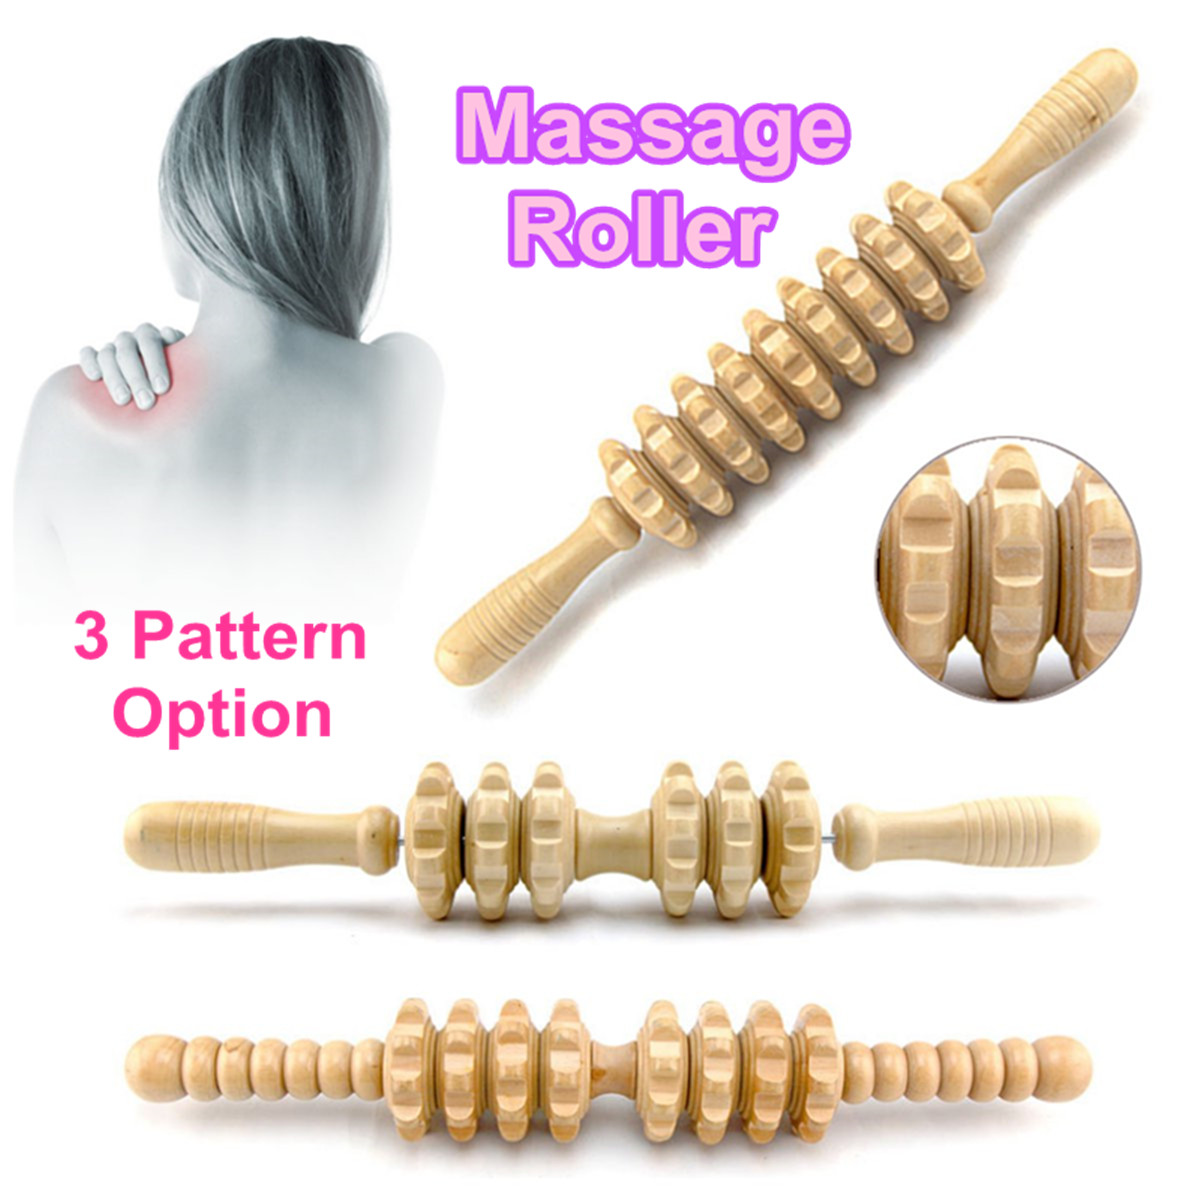 Wooden Massage Roller Stick Body Massage Roller Muscle Soreness Cramping Stress Relief Health Relax Therapy Fitness Yoga Leg Arm